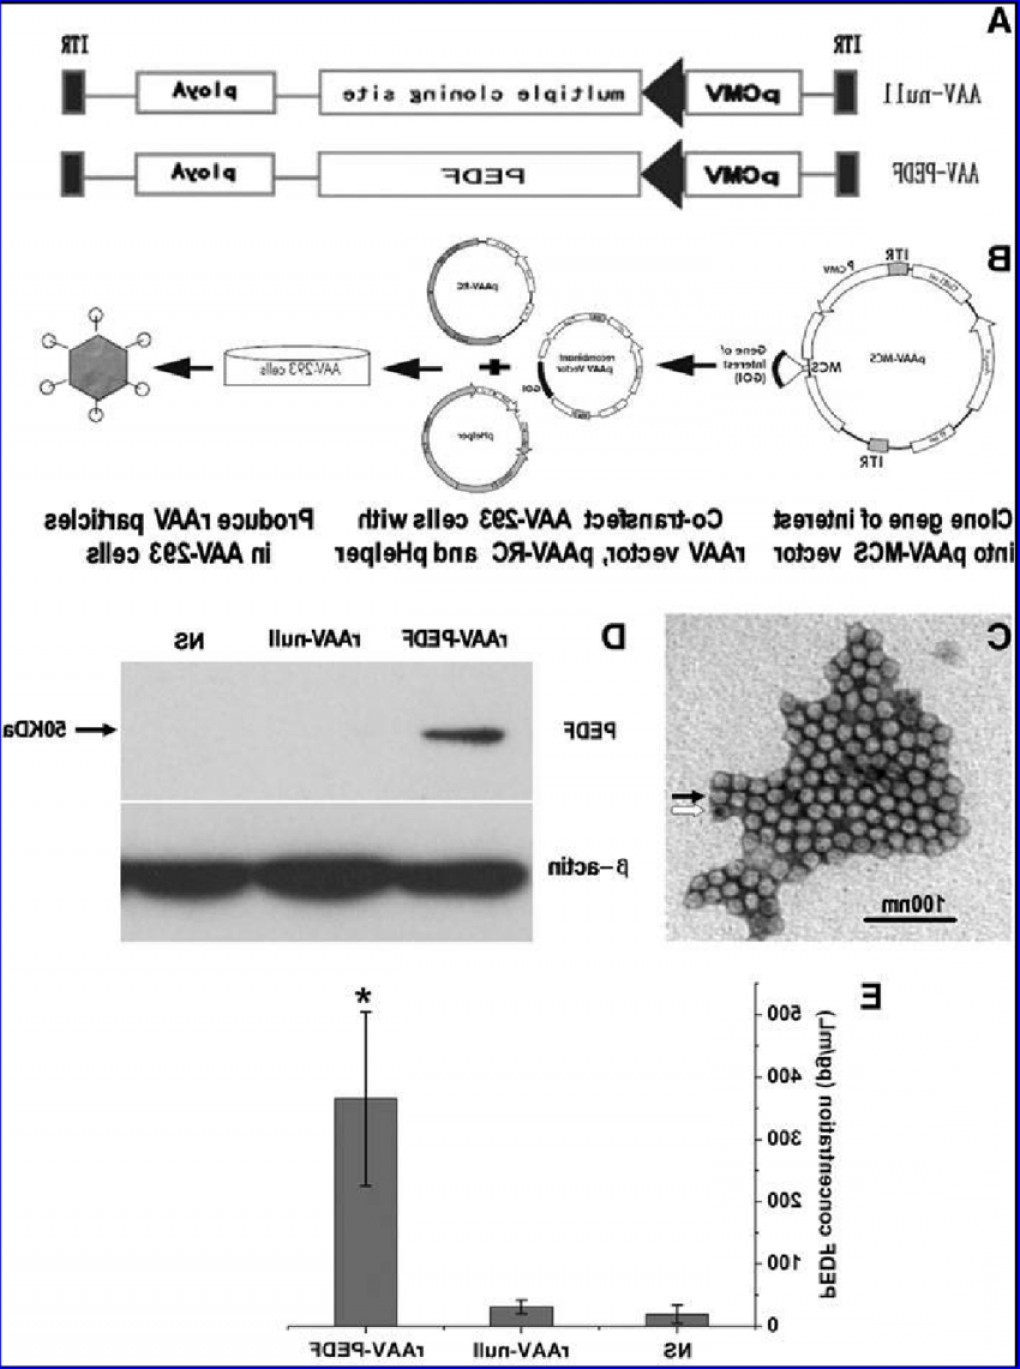 Cloning AAV Vectors: Production Scheme And Characterization Of Raav Pedf A Construction Scheme Forfig